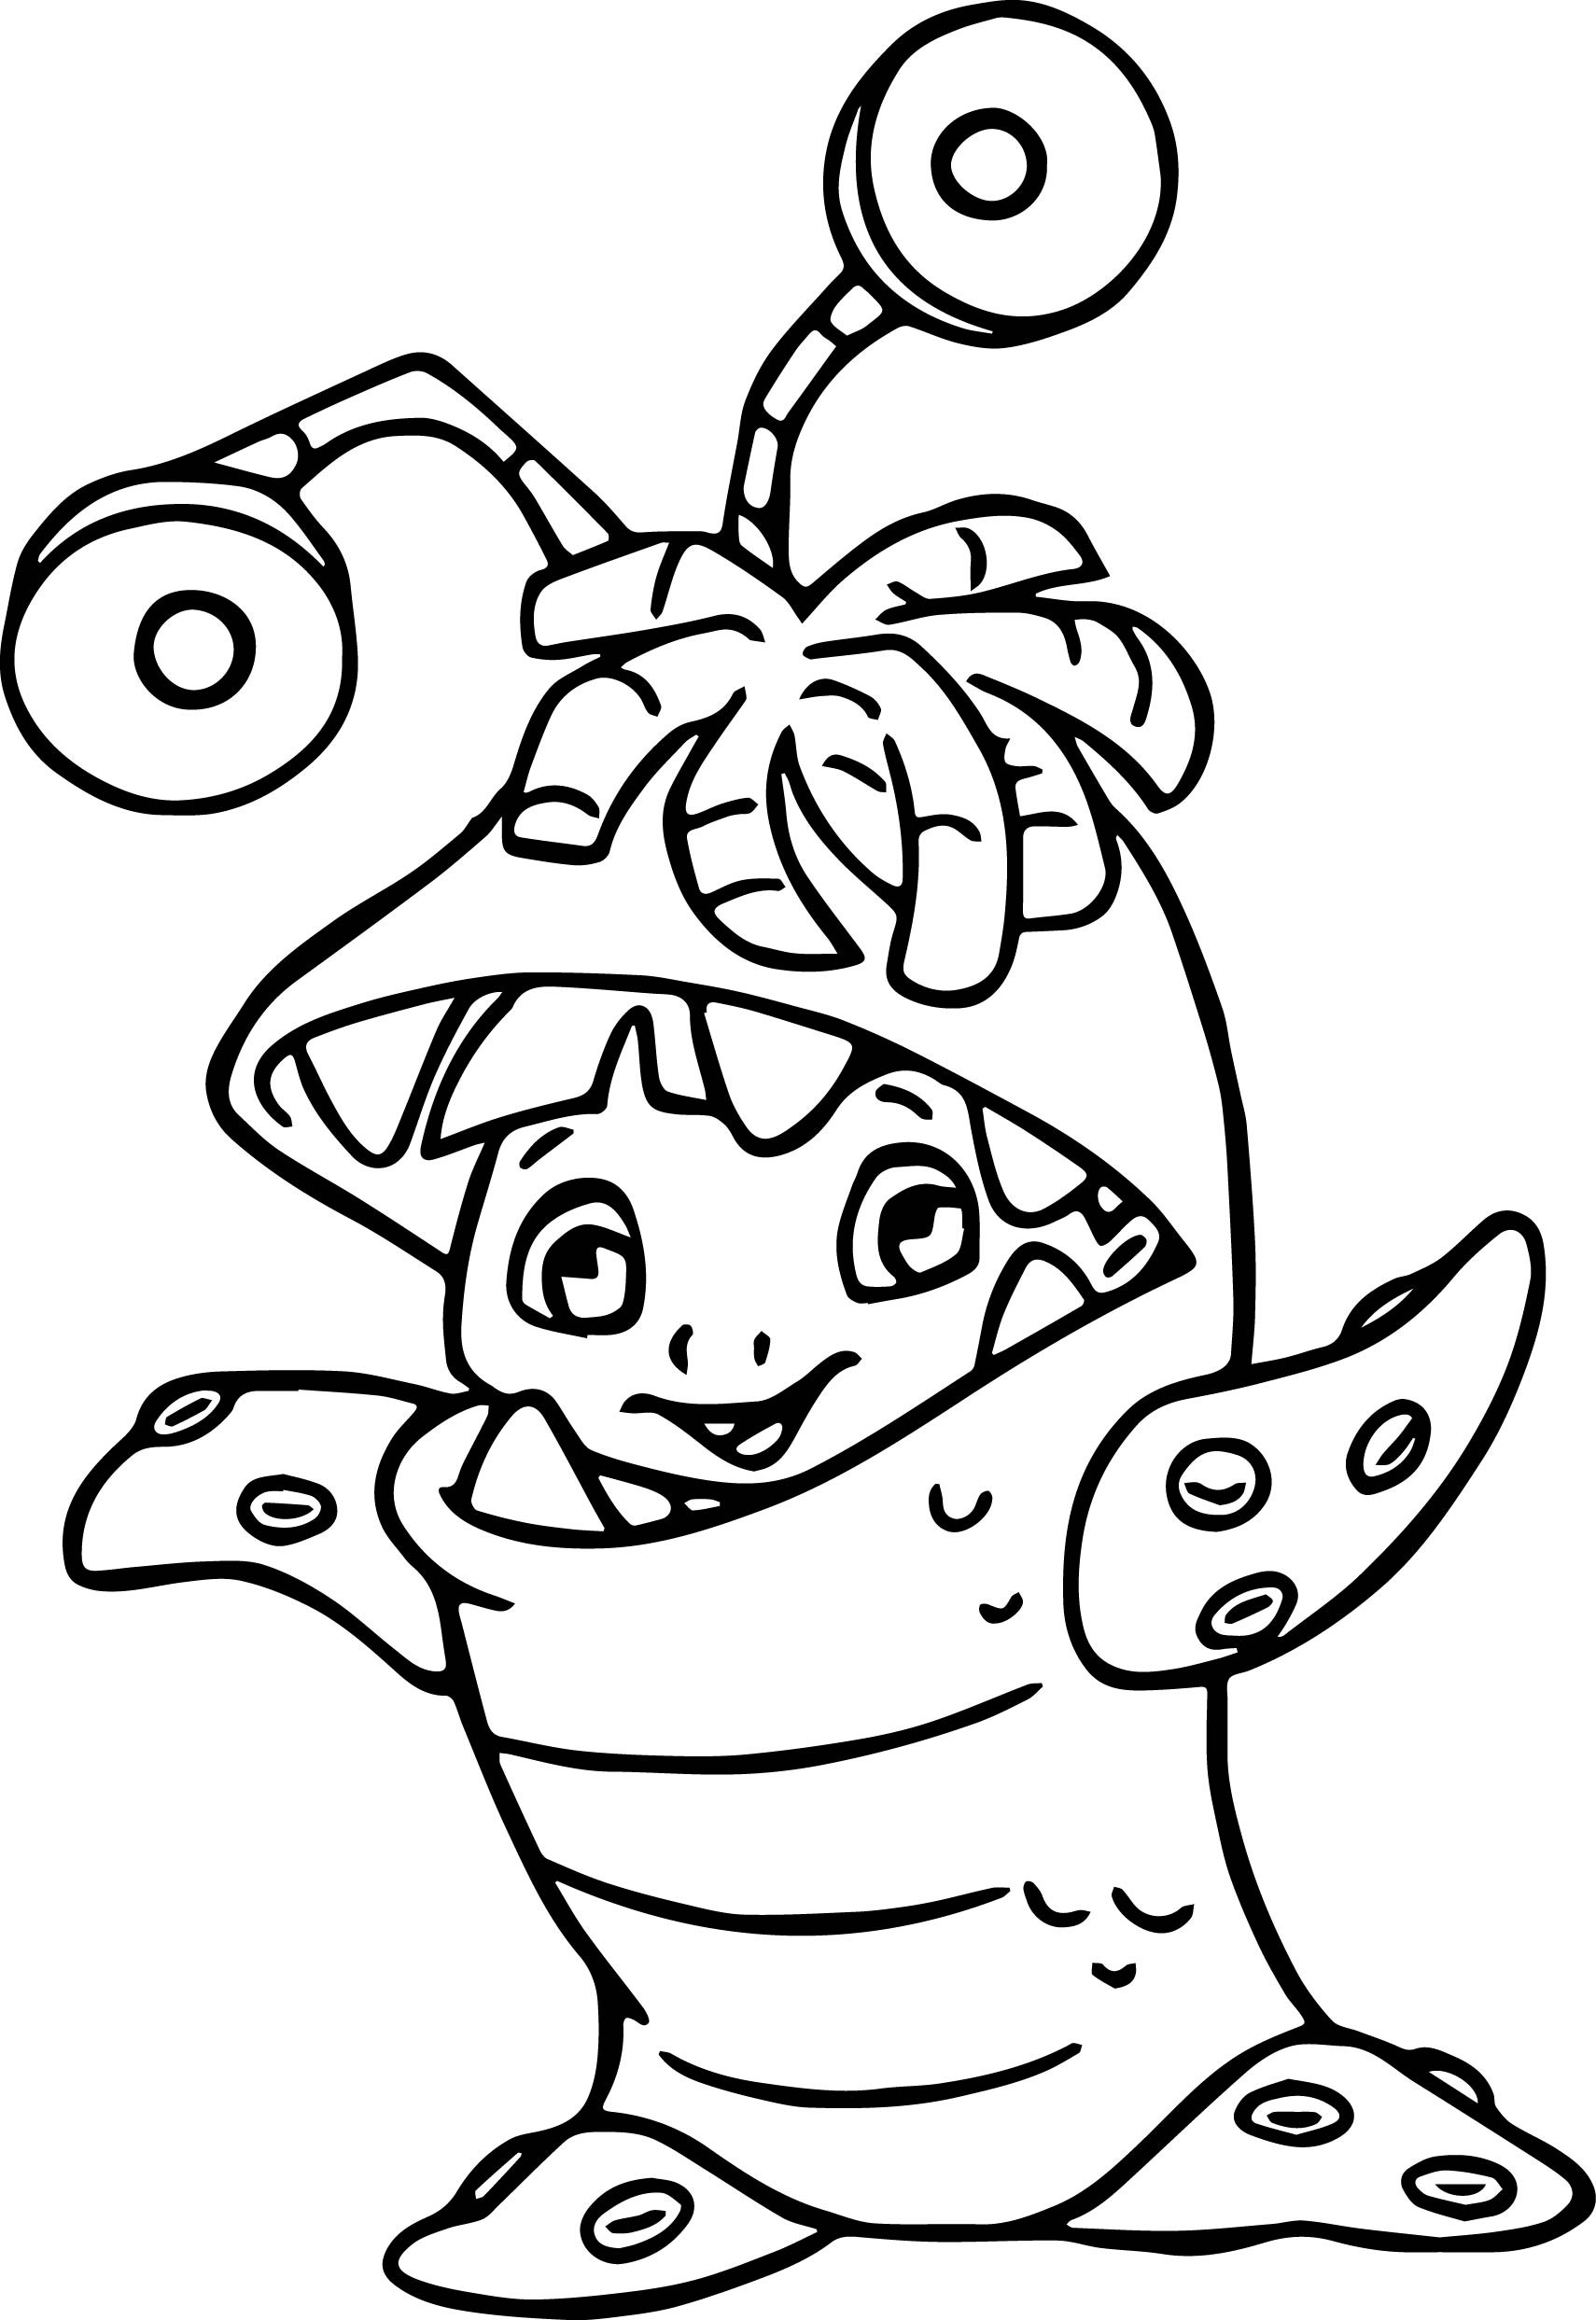 monsters inc coloring monster inc coloring pages to download and print for free inc monsters coloring 1 1